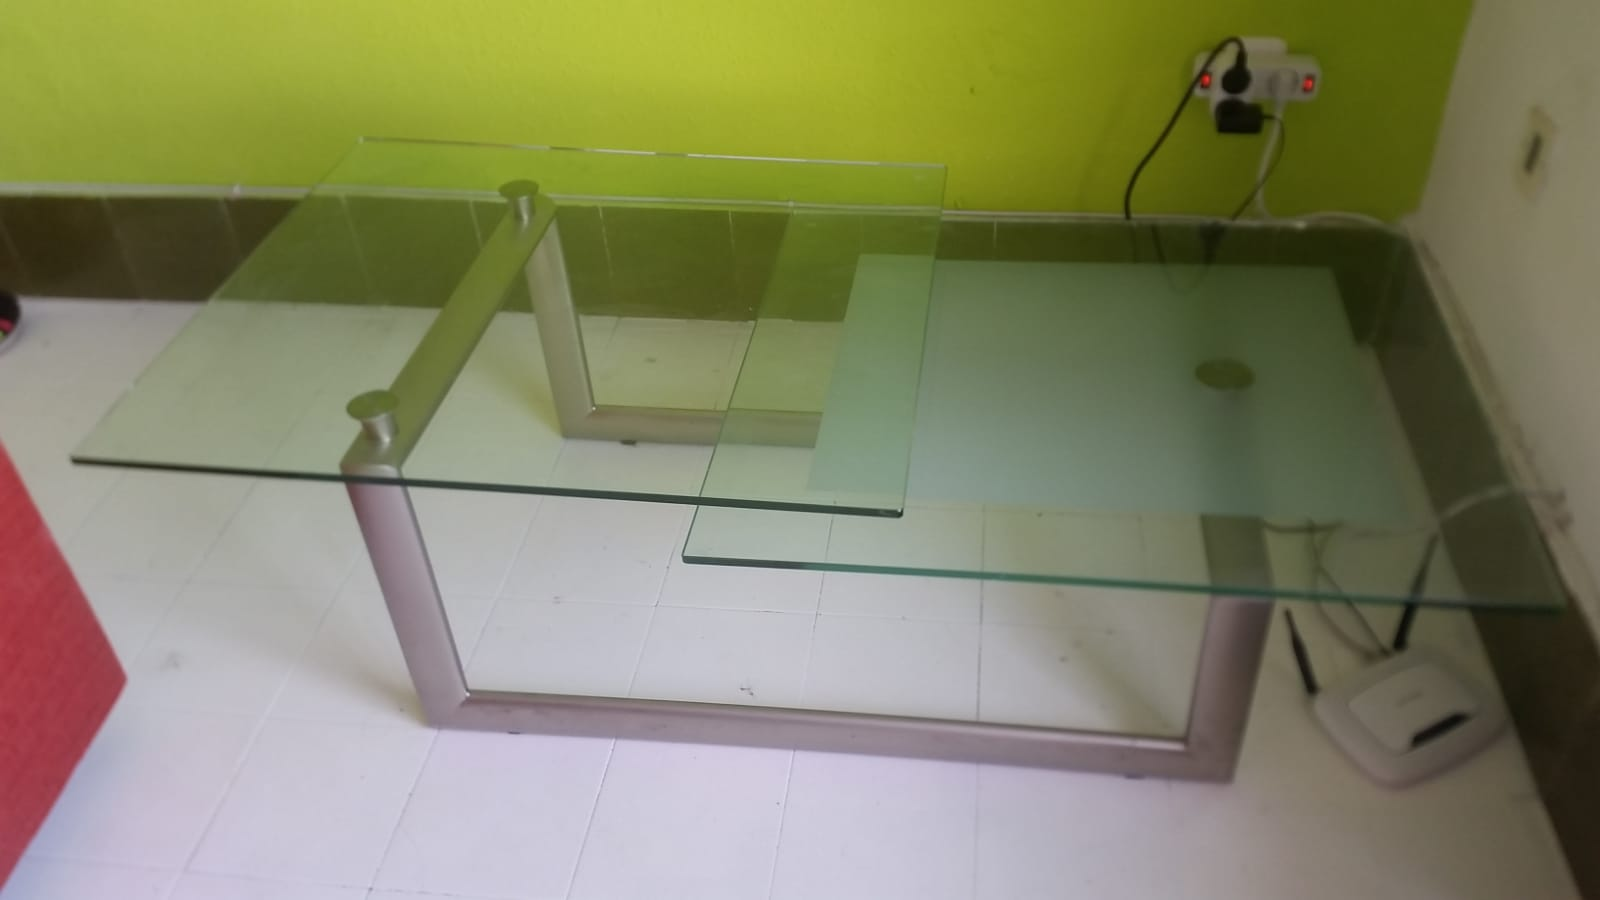 Magnificent For Sale Glass Coffee Table Buy And Sell Items In Los Download Free Architecture Designs Intelgarnamadebymaigaardcom